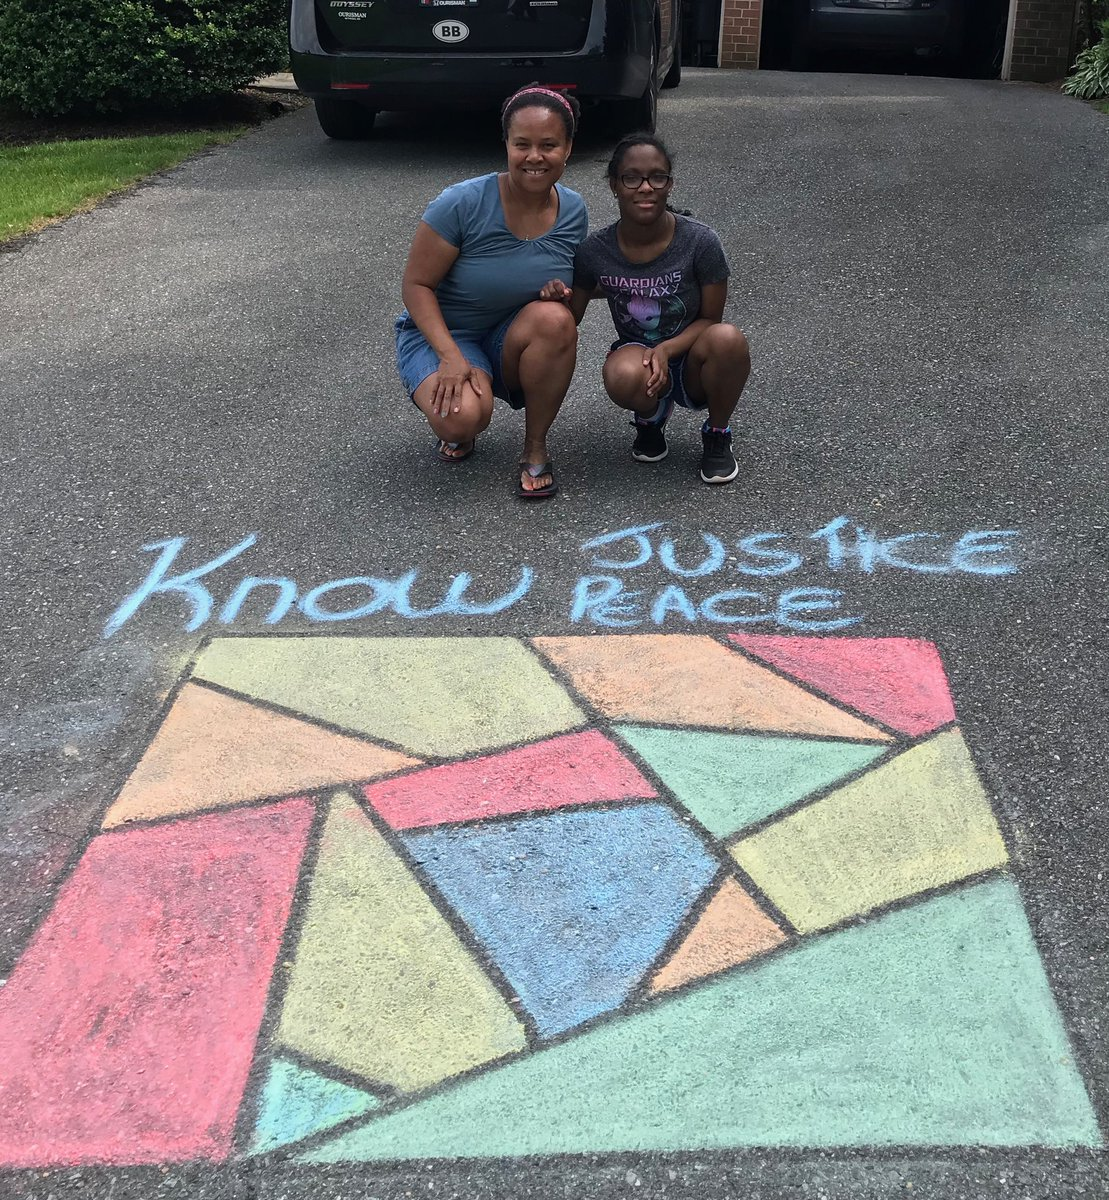 My sister and niece in Maryland preparing their driveway for the solidarity march. BLM✊🏾 https://t.co/W5kSbcGIl5